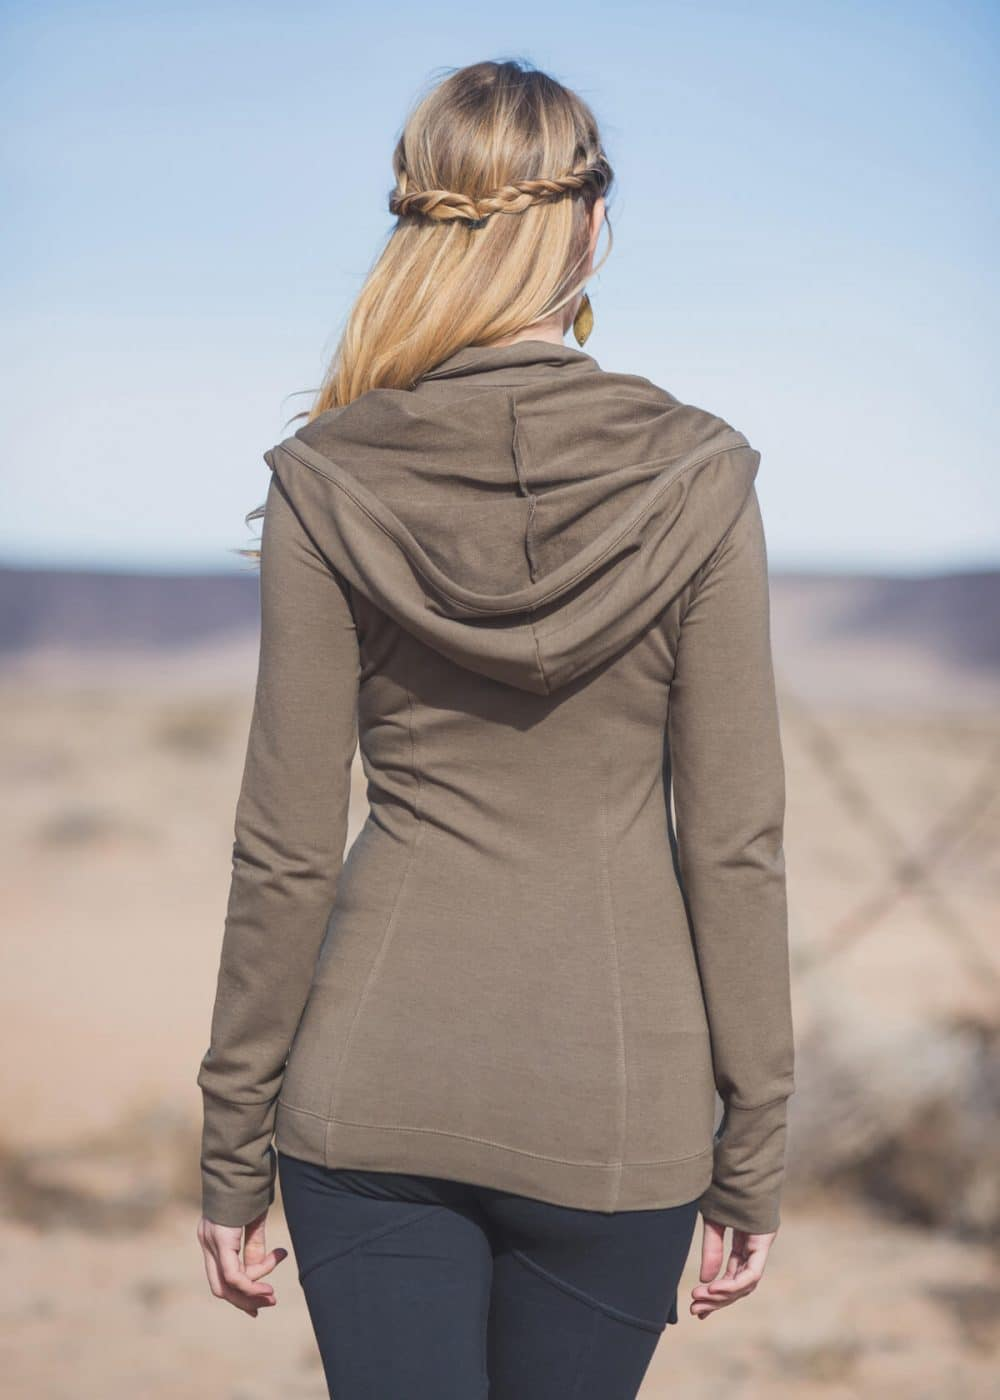 Hemp hoodies